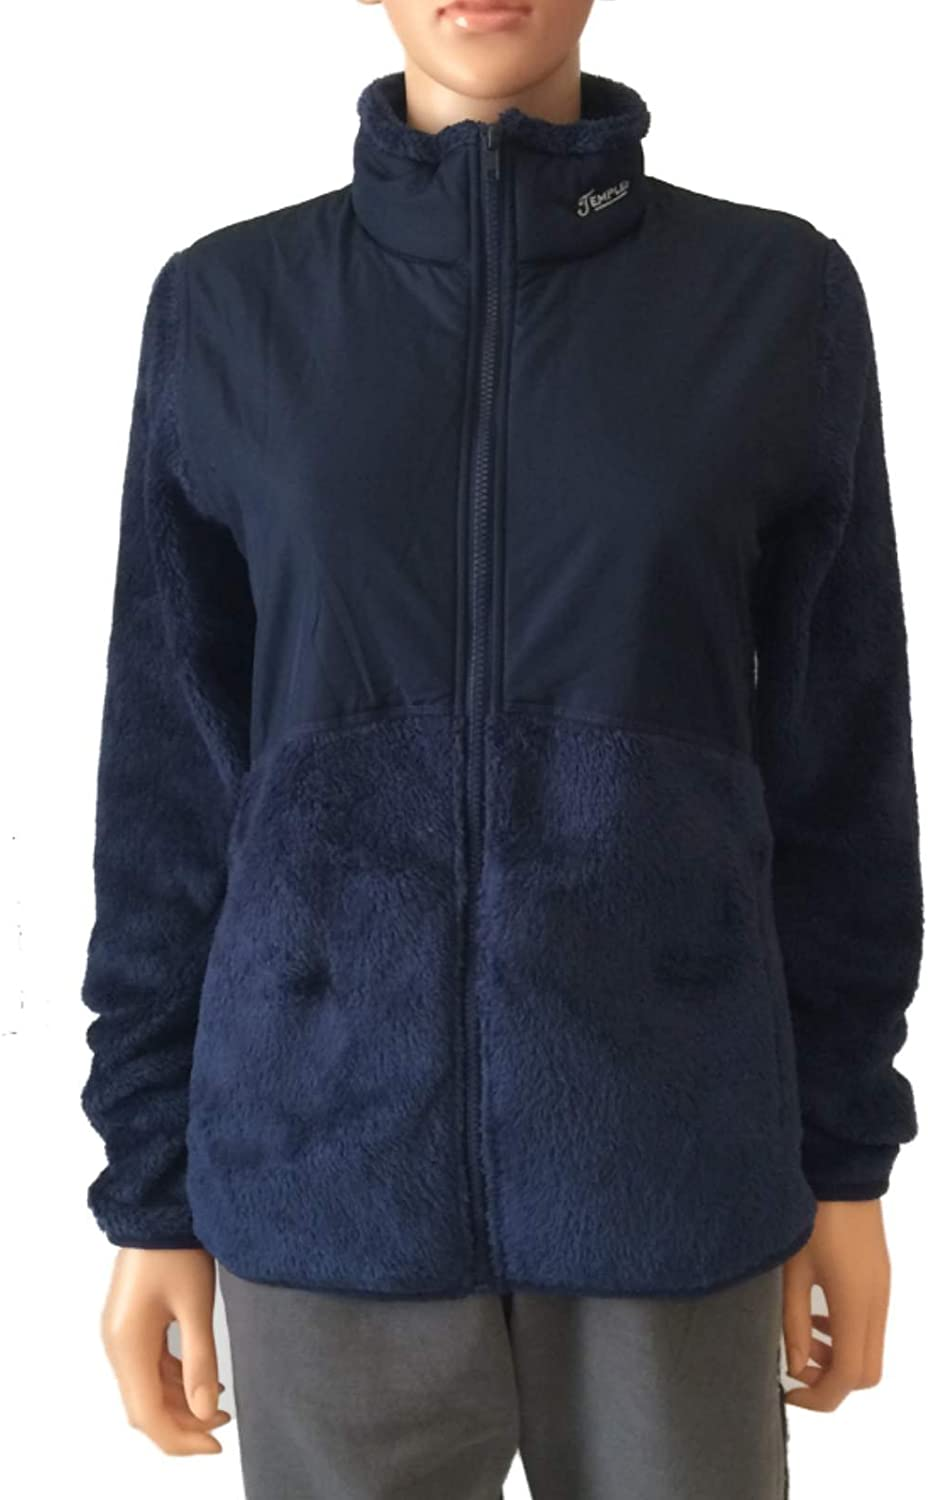 Gear for Sports Temple Owls GFS Womens Navy LS Full Zip Furry Jacket with Pockets (M)